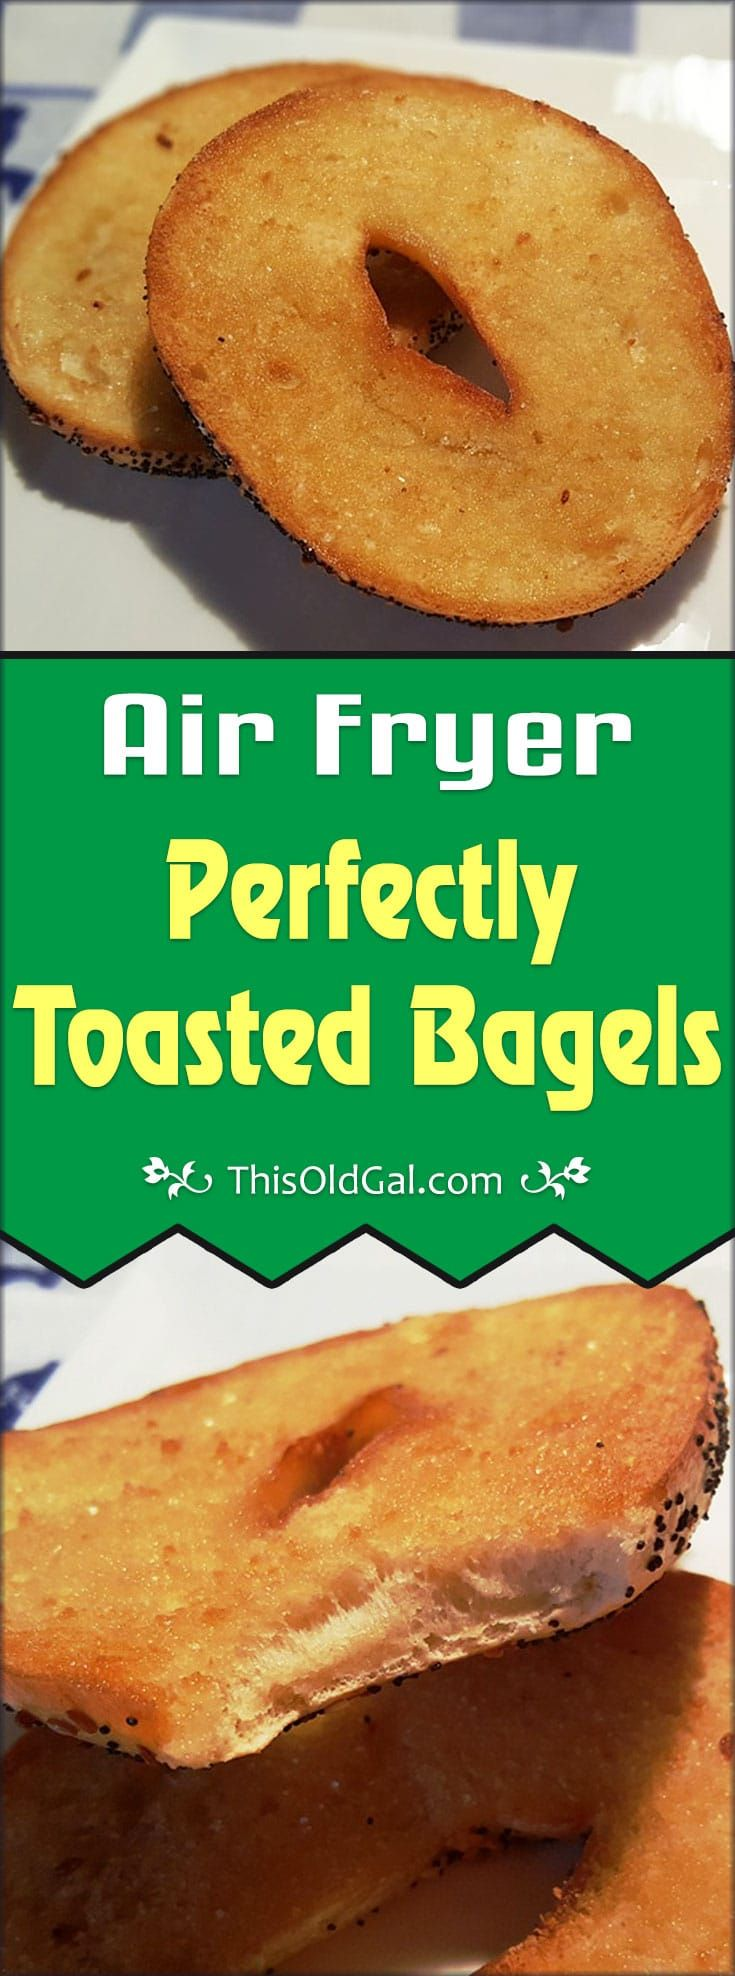 Everything you need to make Air Fryer Bagels. Air Fryer